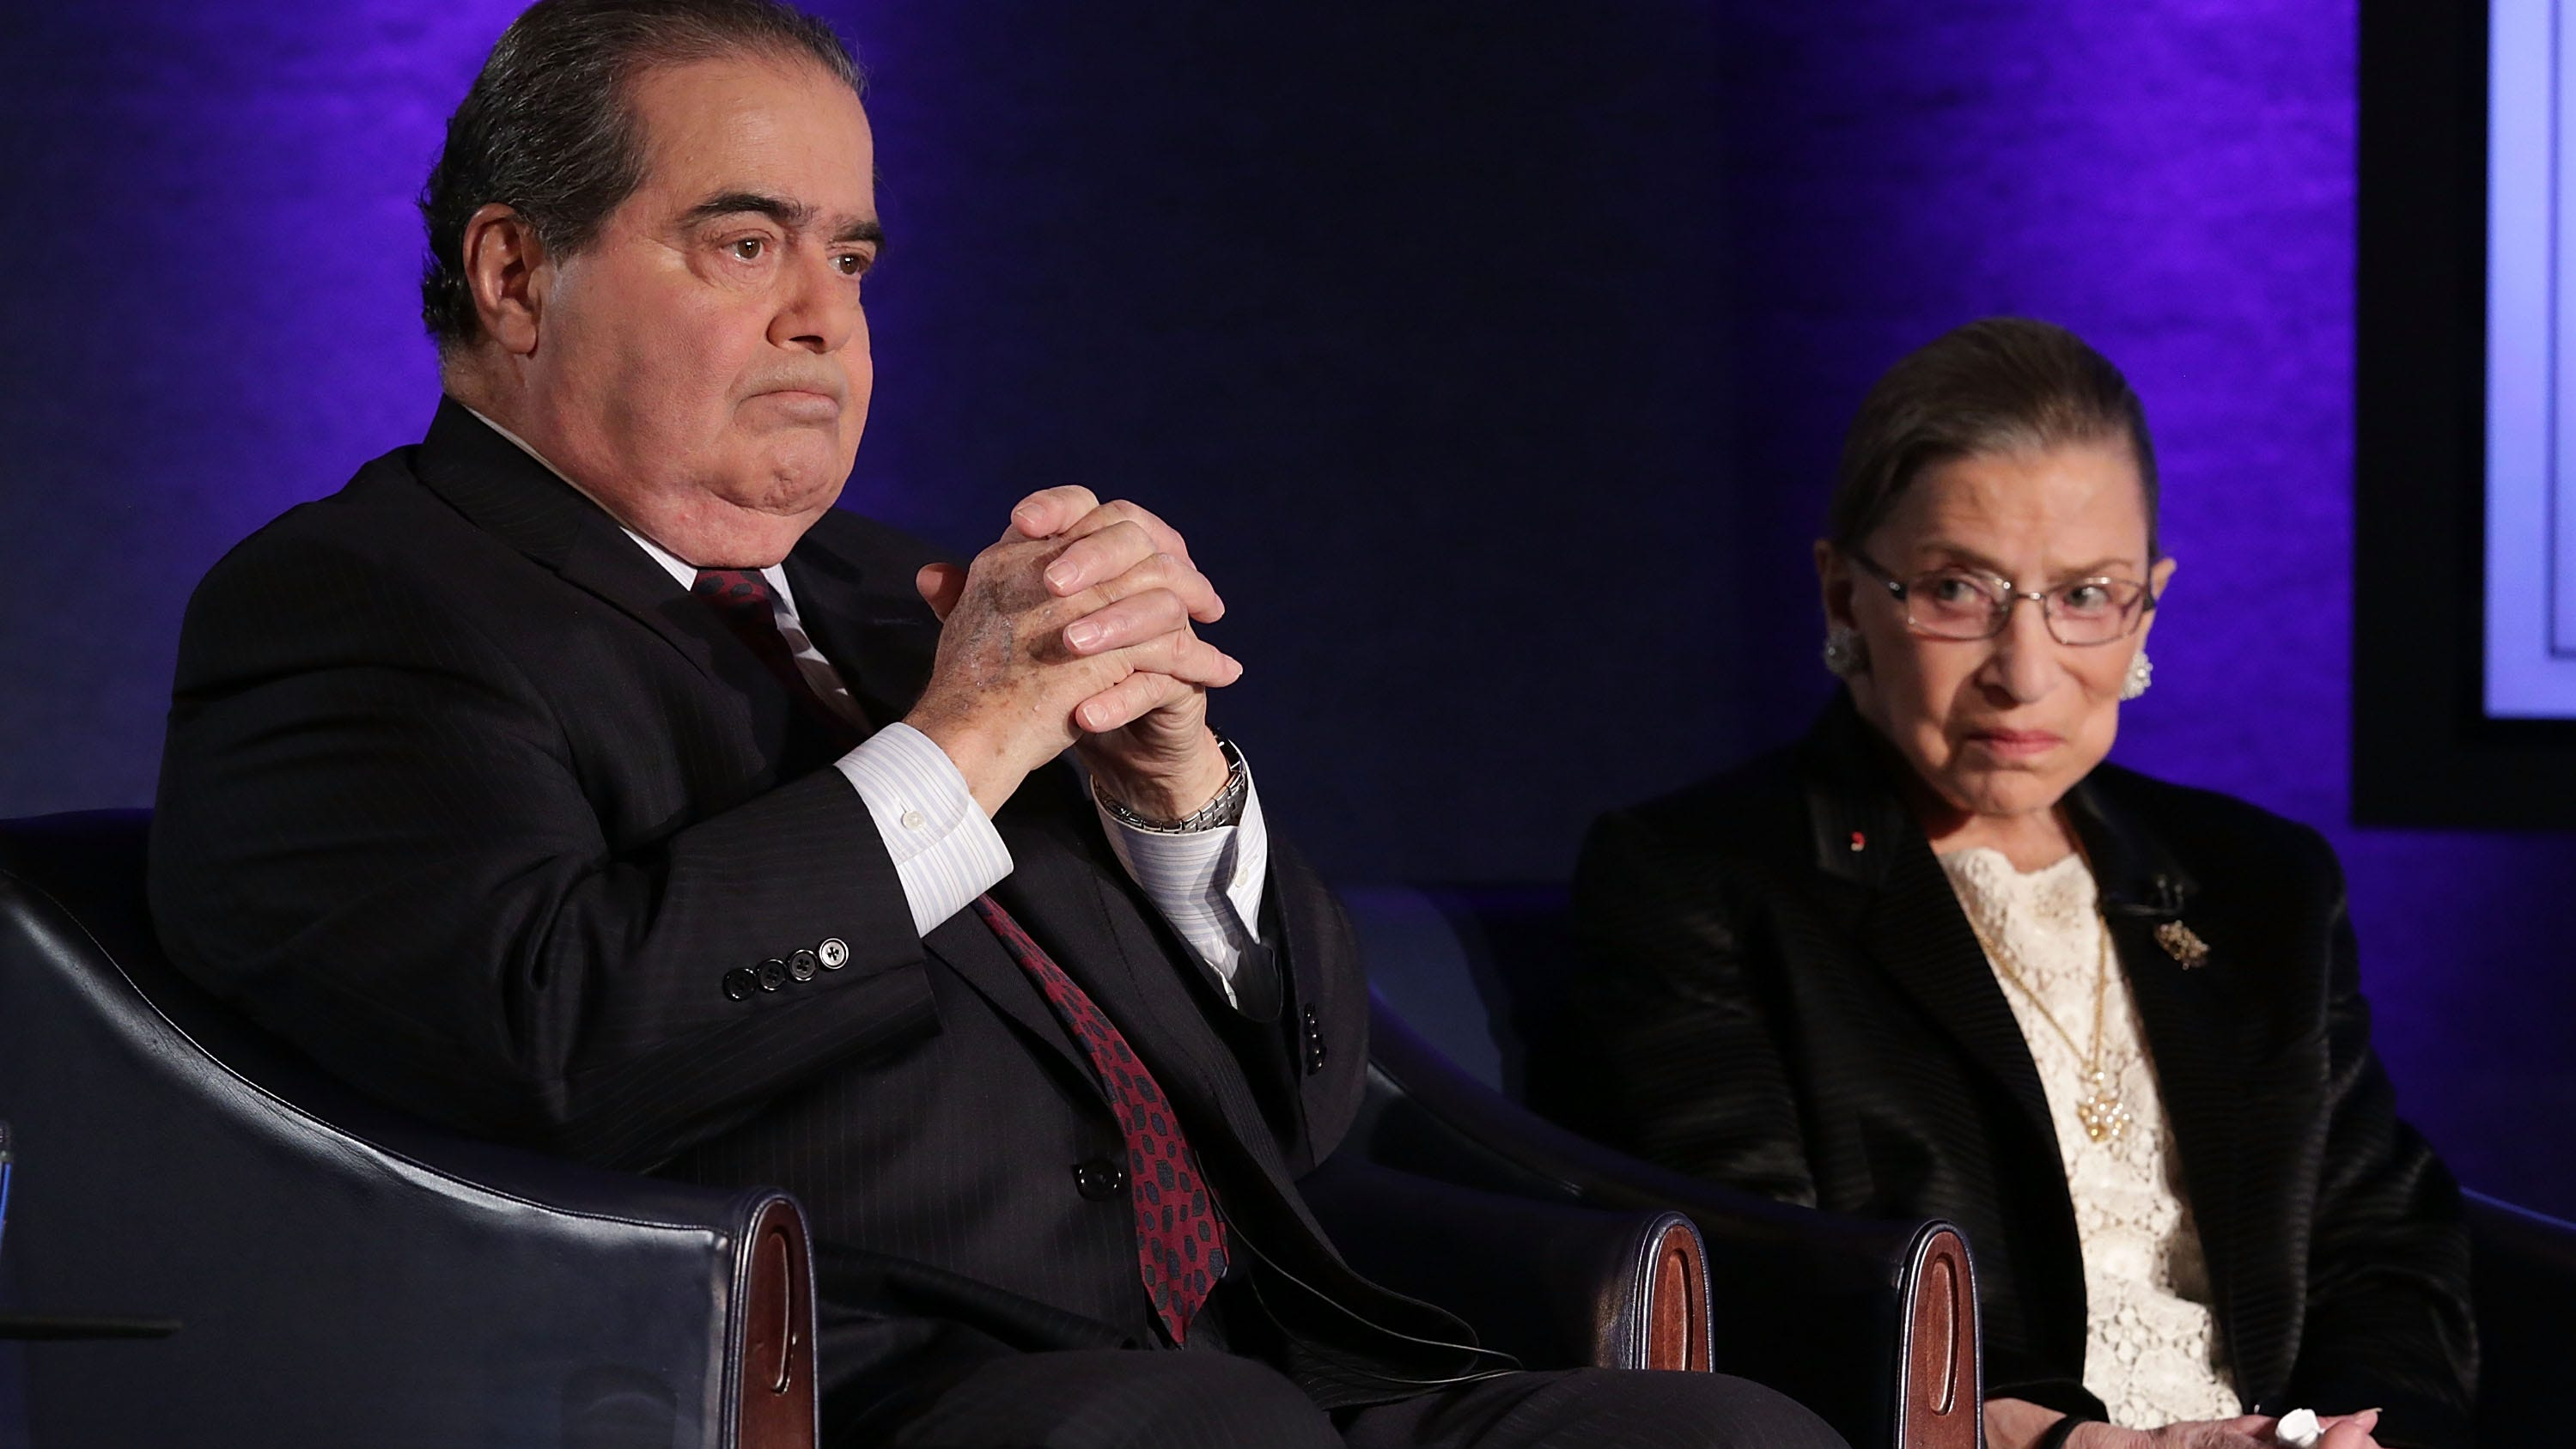 Opera, travel, food, law: The unlikely friendship of Ruth Bader Ginsburg and Antonin Scalia